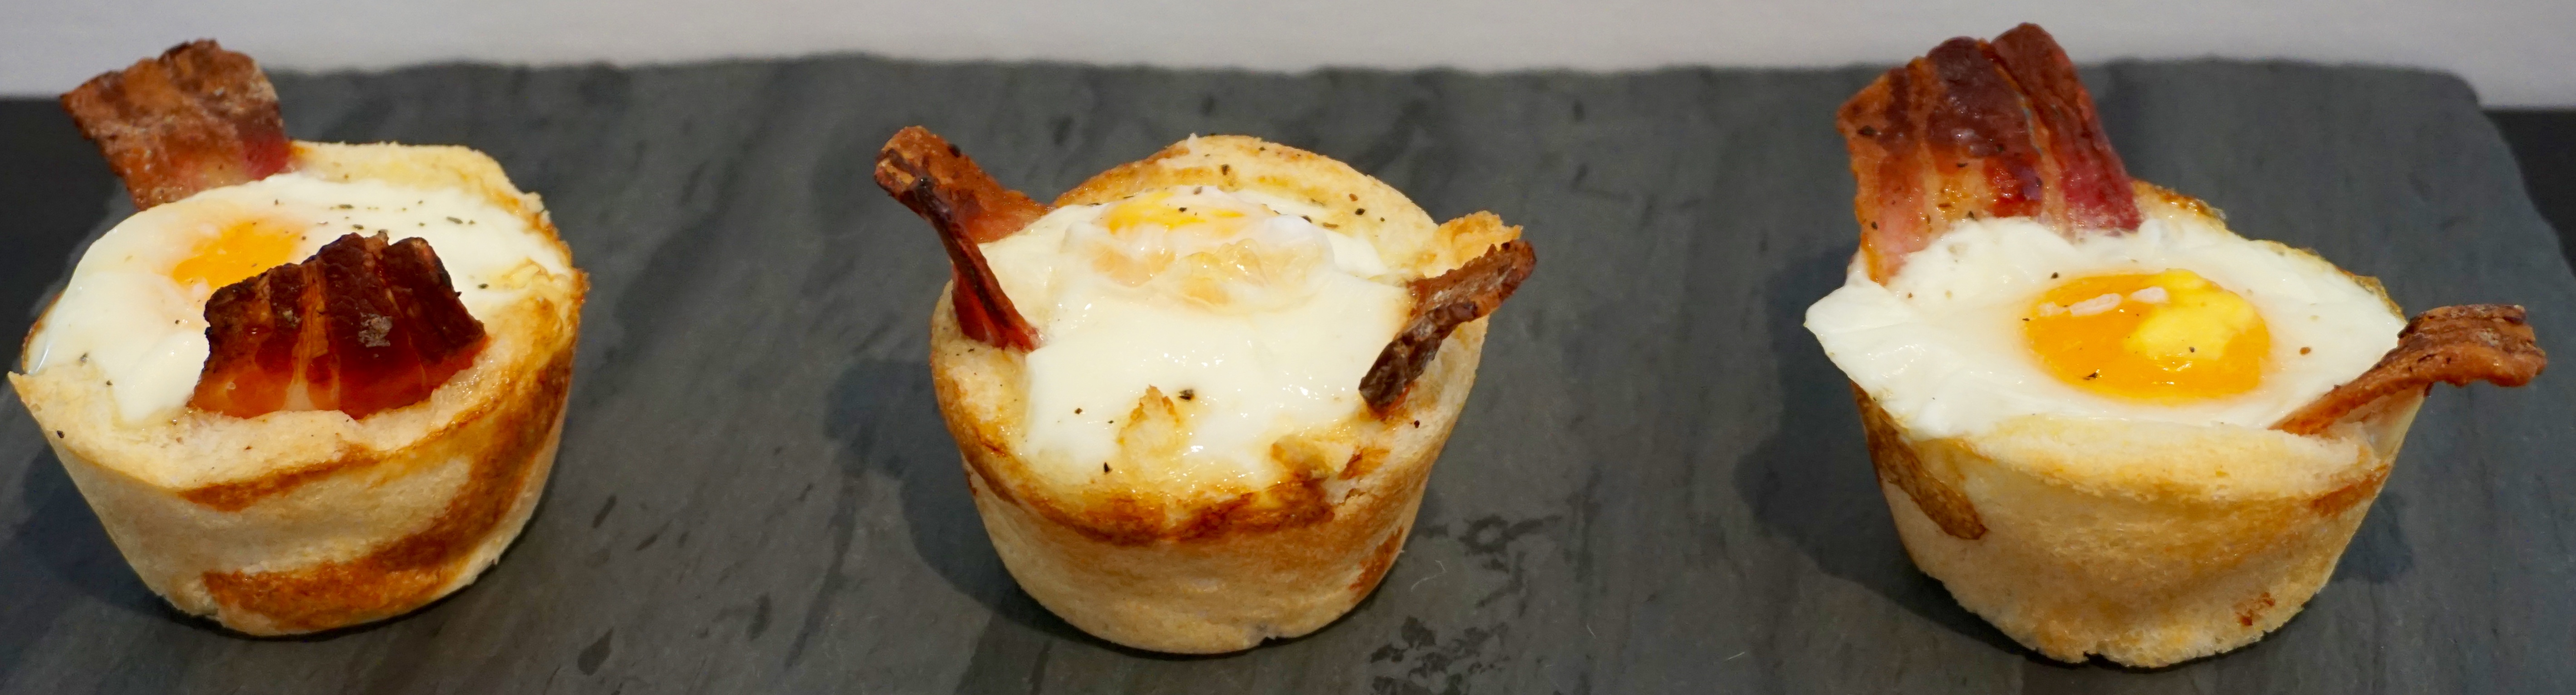 Bacon Egg Toast Muffin Pan Wow Diana Antholis